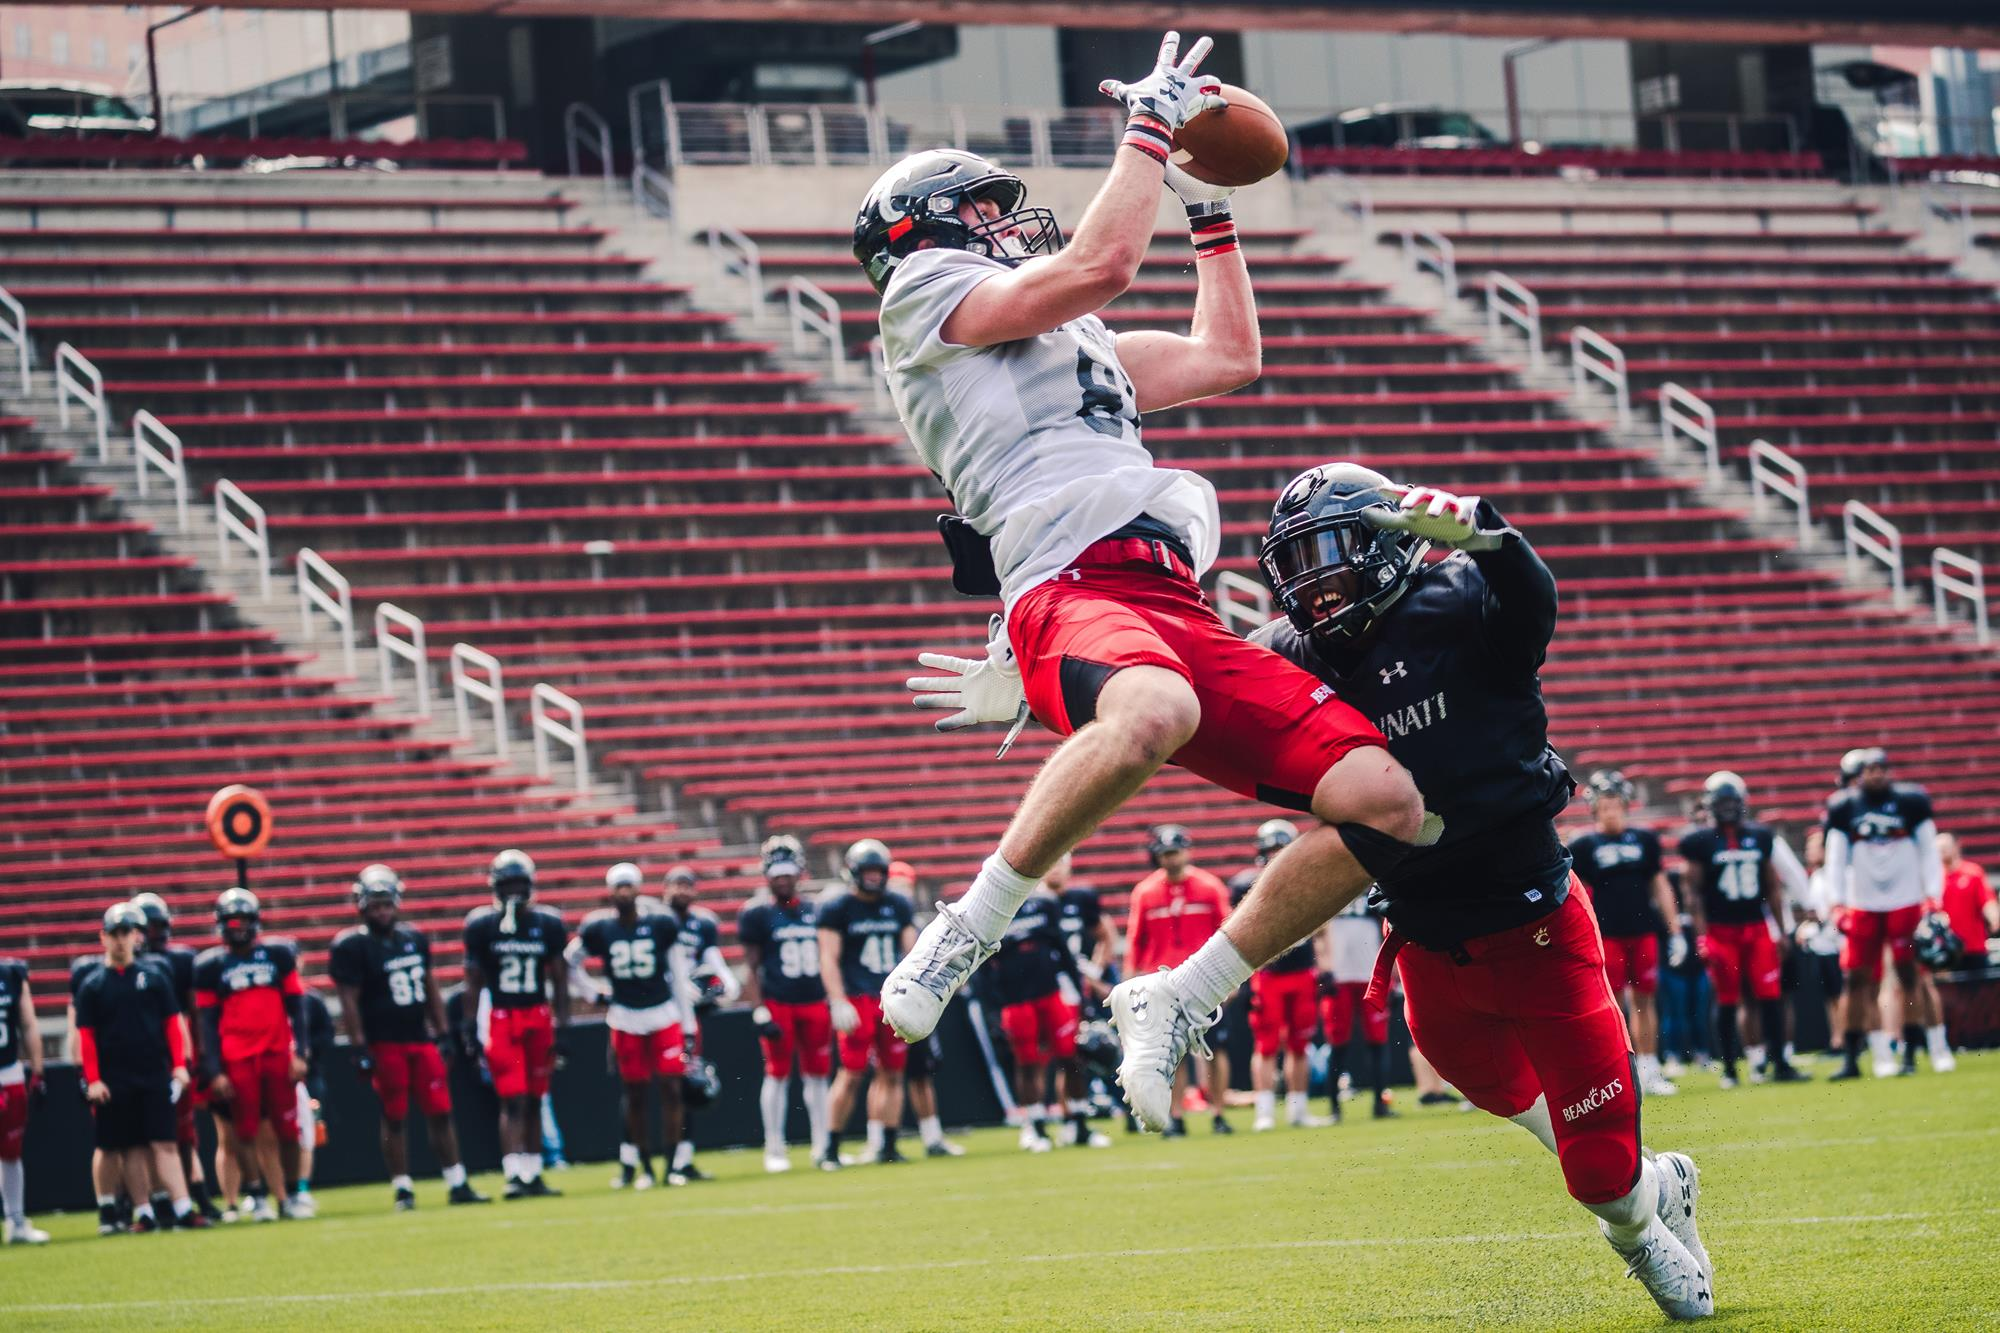 Whyle_jumping_catch_Hicks_defense.0.jpg